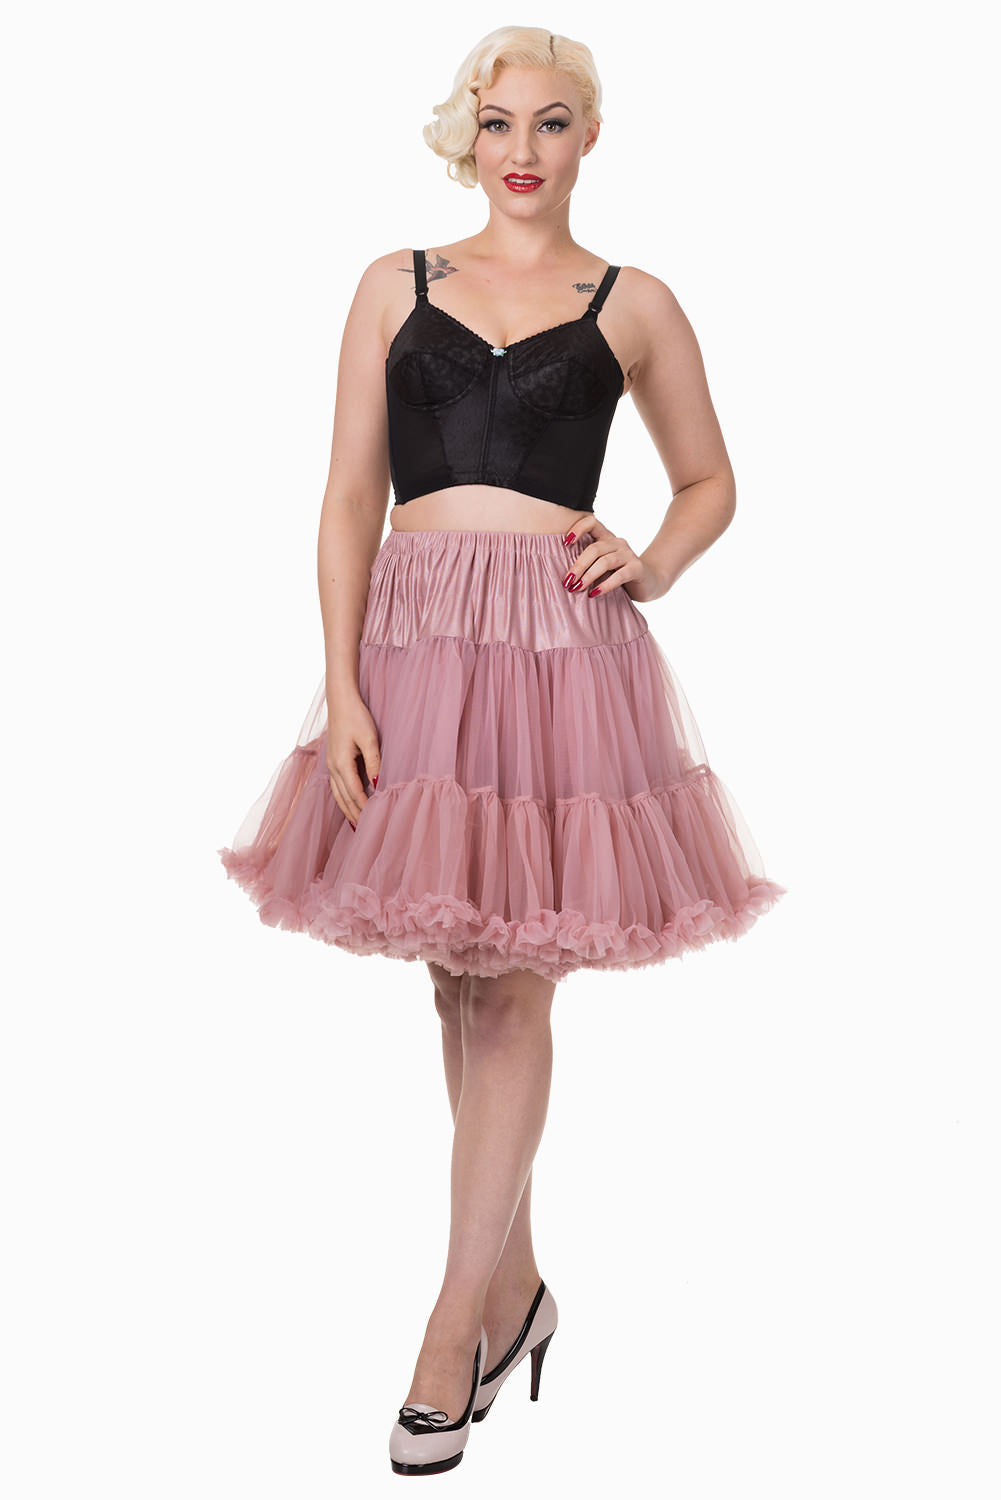 Walkabout Petticoat in Dusty Pink - Natasha Marie Clothing